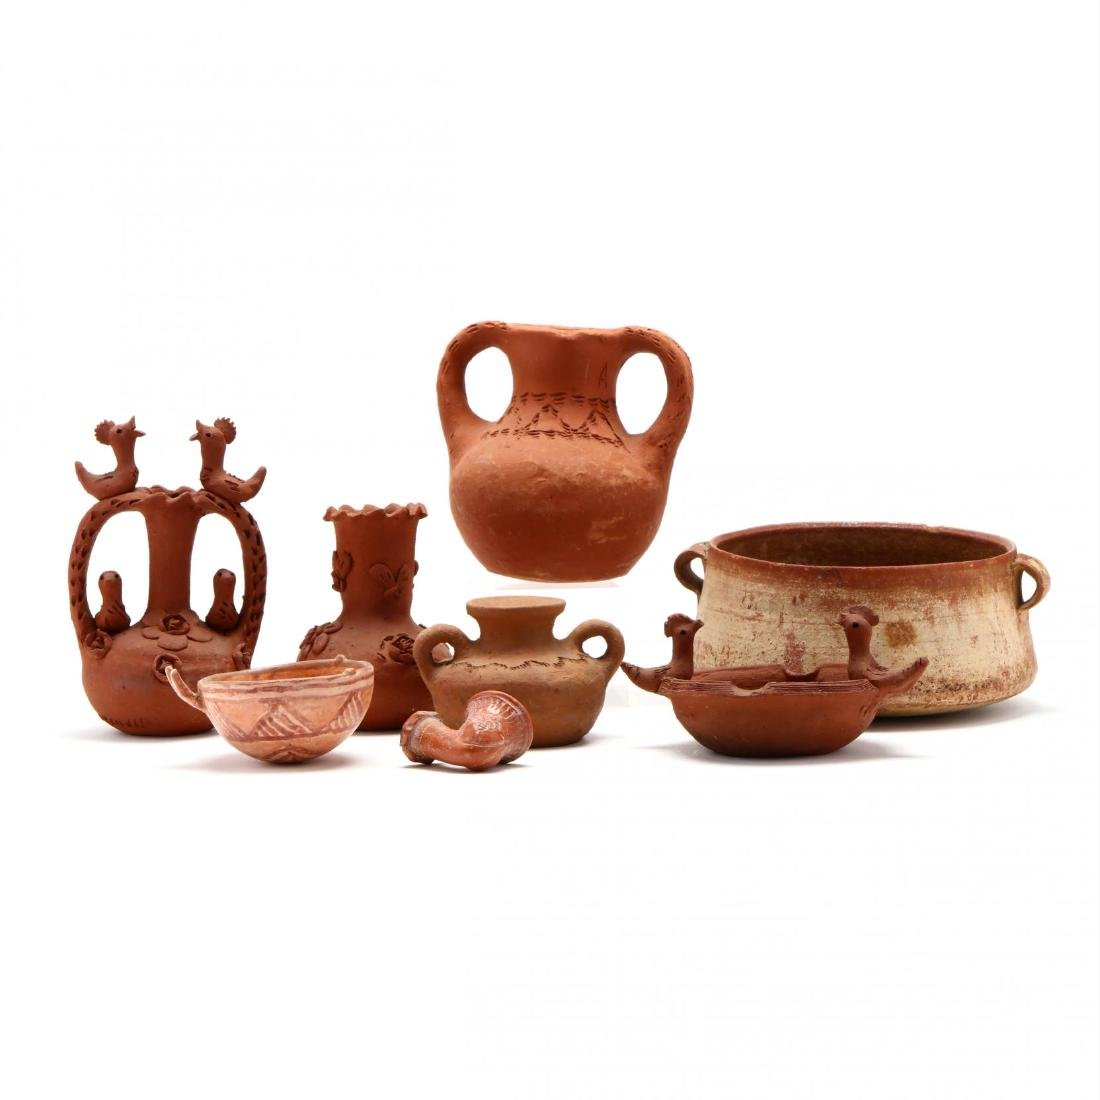 Group of Antique Cypriot Pottery Reproductions